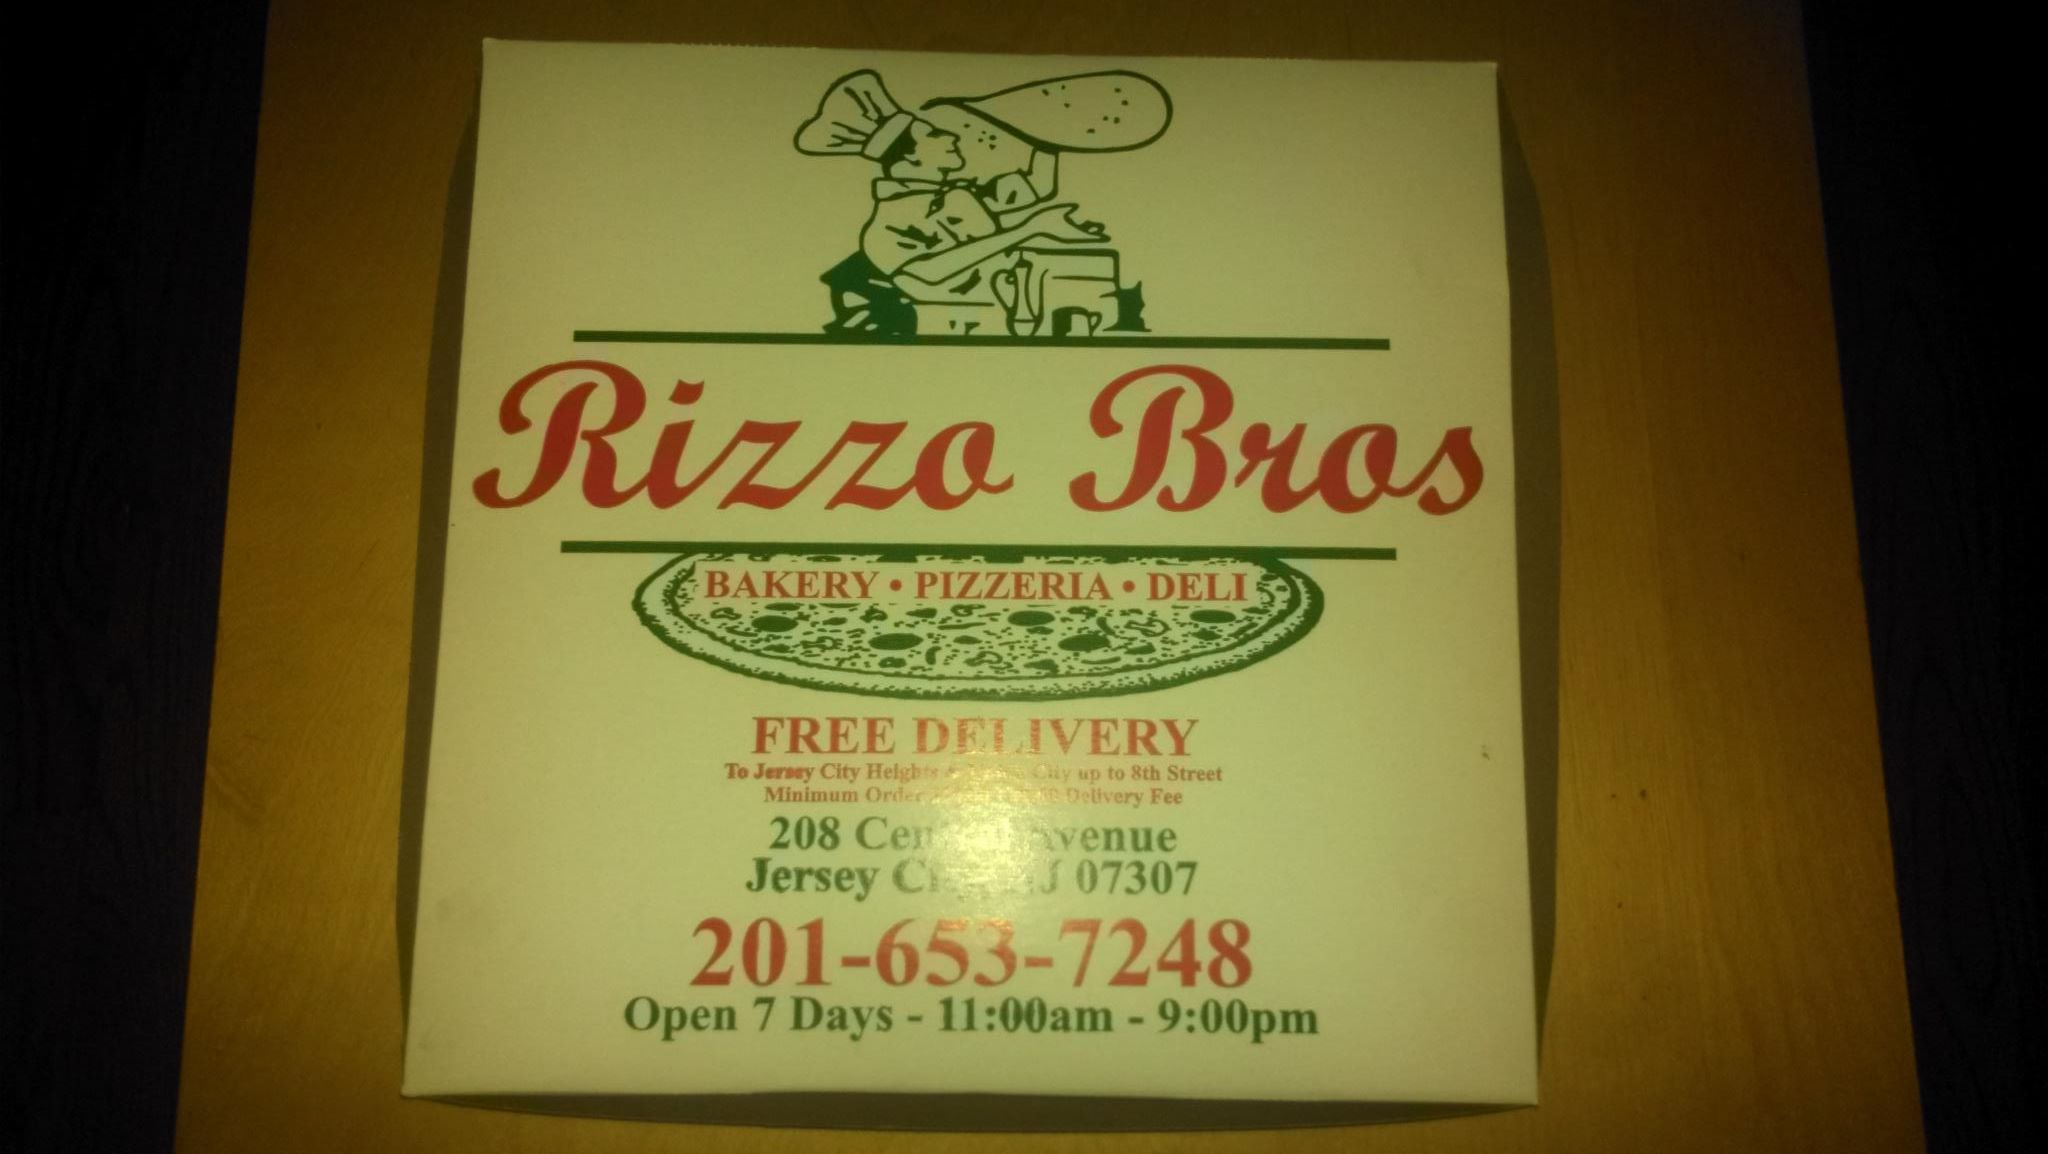 Best Pizza in Jersey City (Heights)